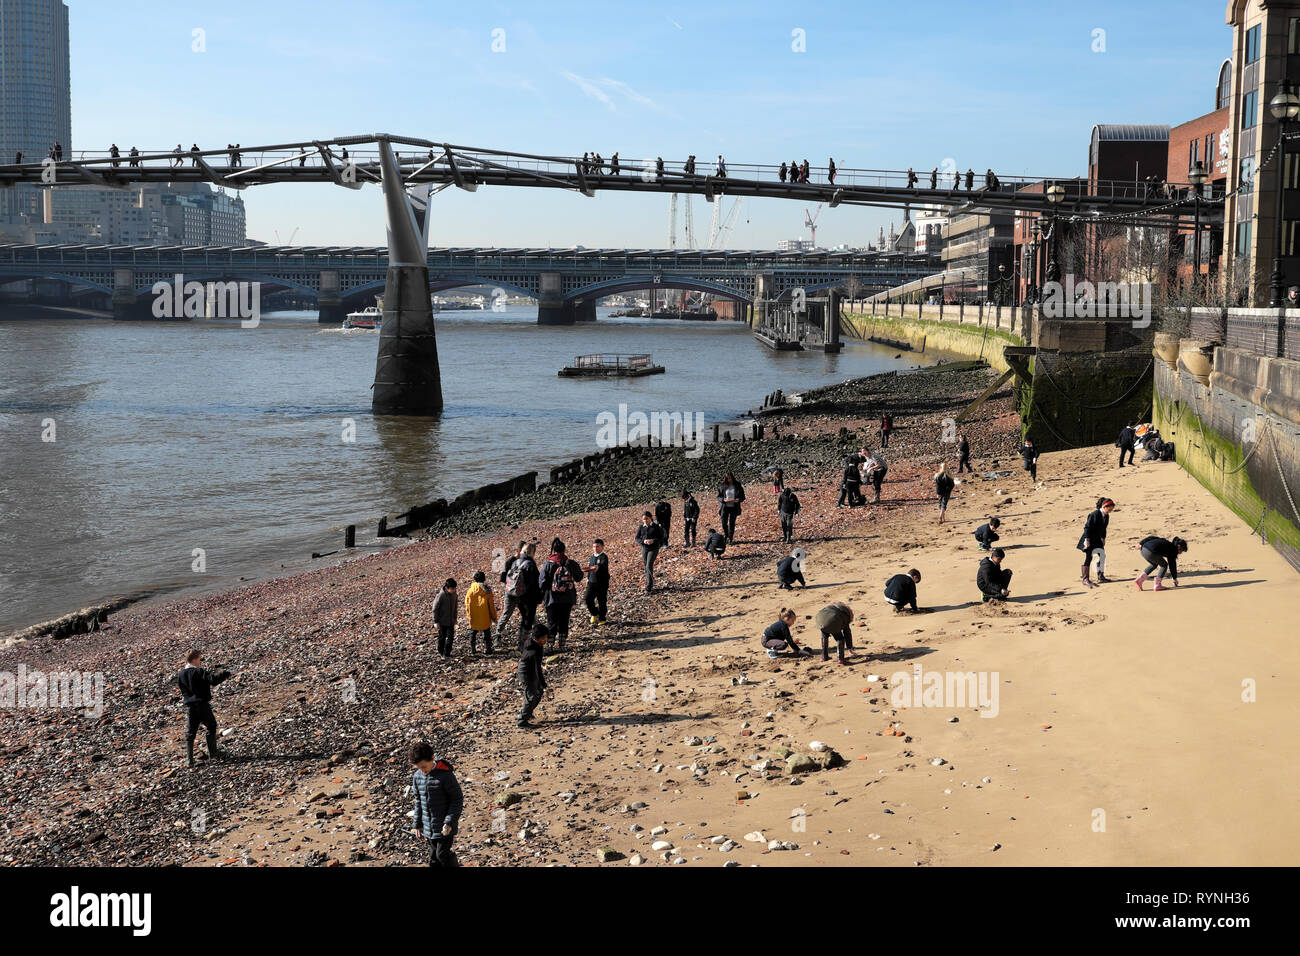 View of schoolchildren archaeology school group at low tide looking for artefacts on the foreshore of the River Thames London England UK  KATHY DEWITT Stock Photo